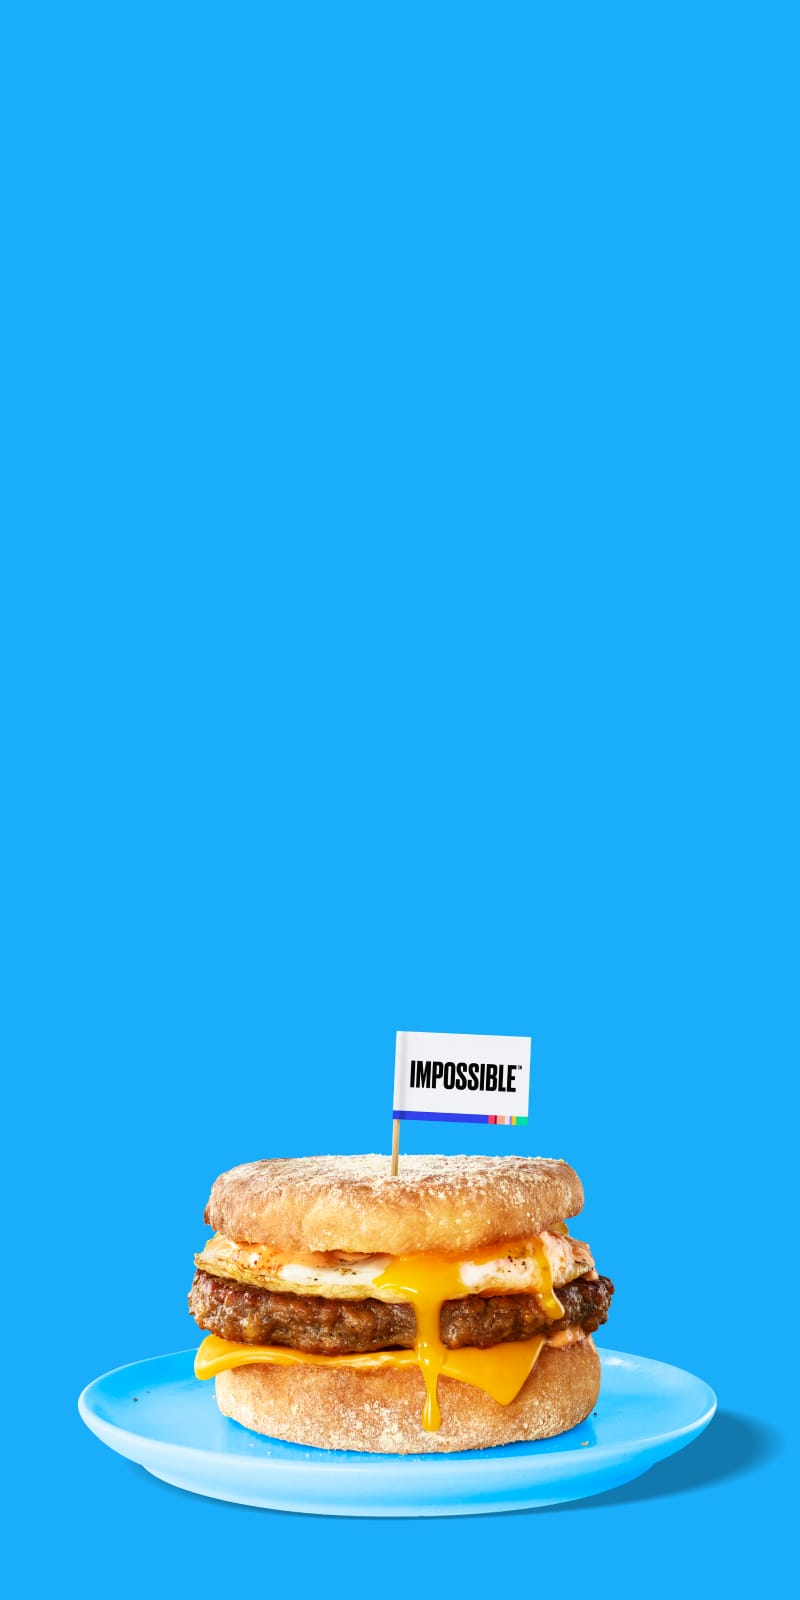 An Impossible Sausage breakfast sandwich dripping with egg and cheese on a blue plate and blue background